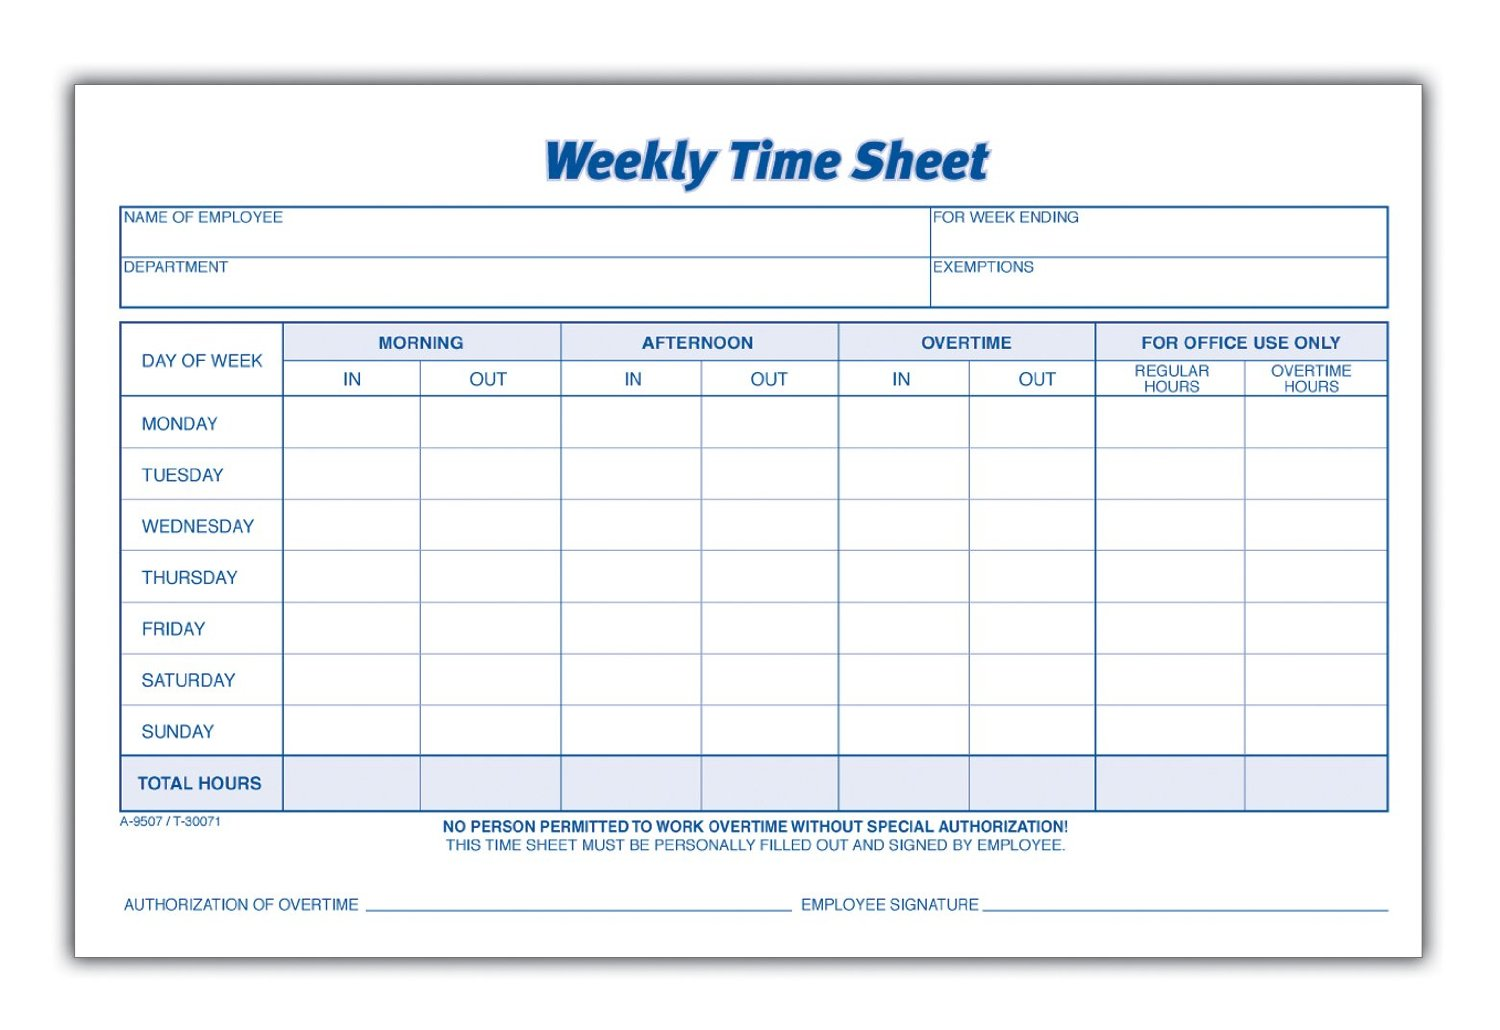 Doc602265 Sample Employee Timesheet Calculator Excel – Sample Payroll Timesheet Calculator